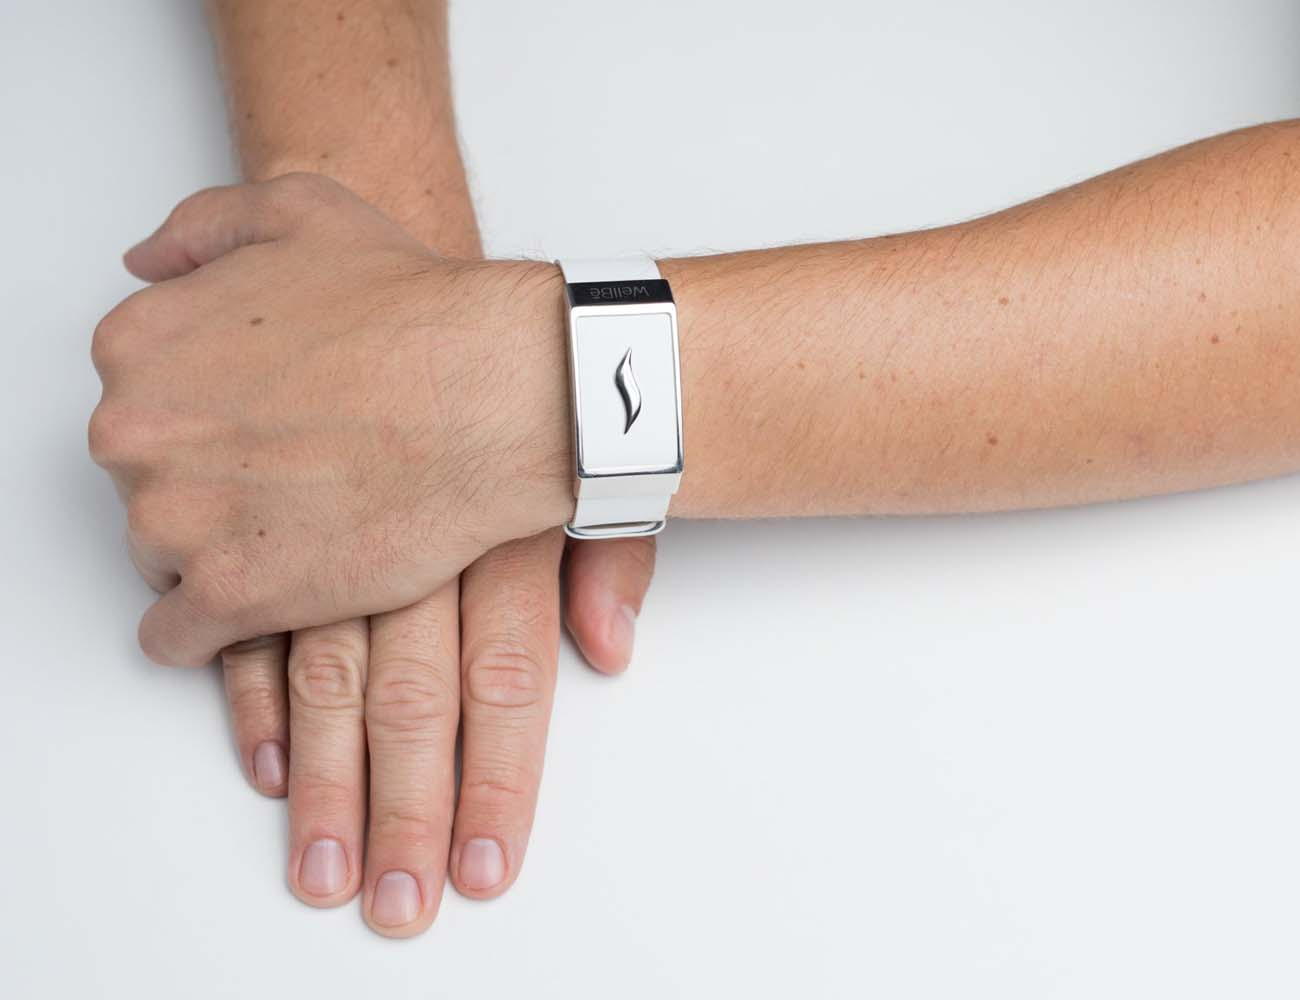 The WellBe – World's First Mindfulness Bracelet for Emotional Balance